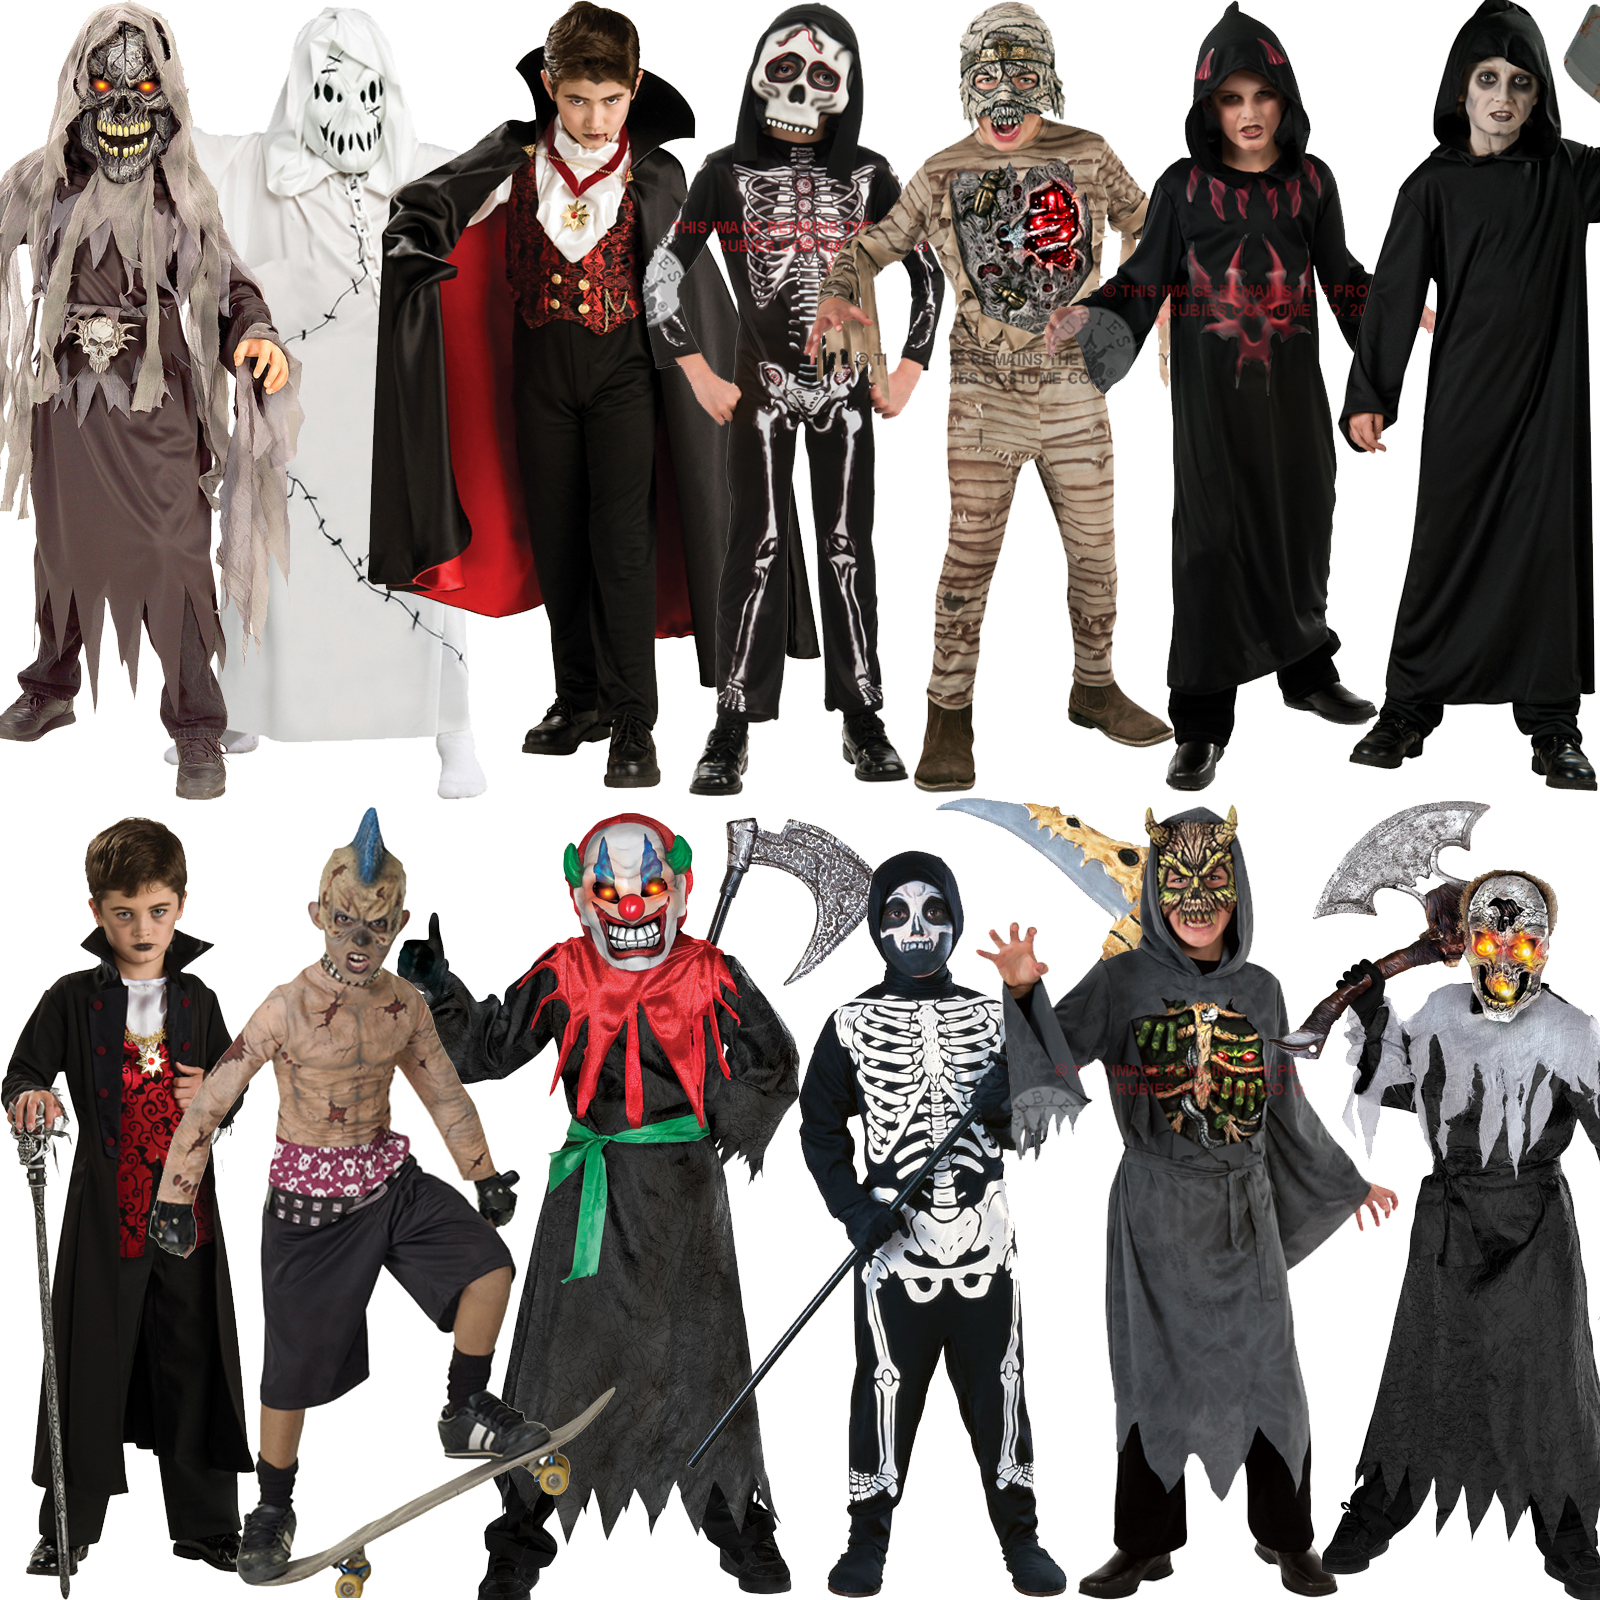 soul reaper costume kids costume scary halloween costume at